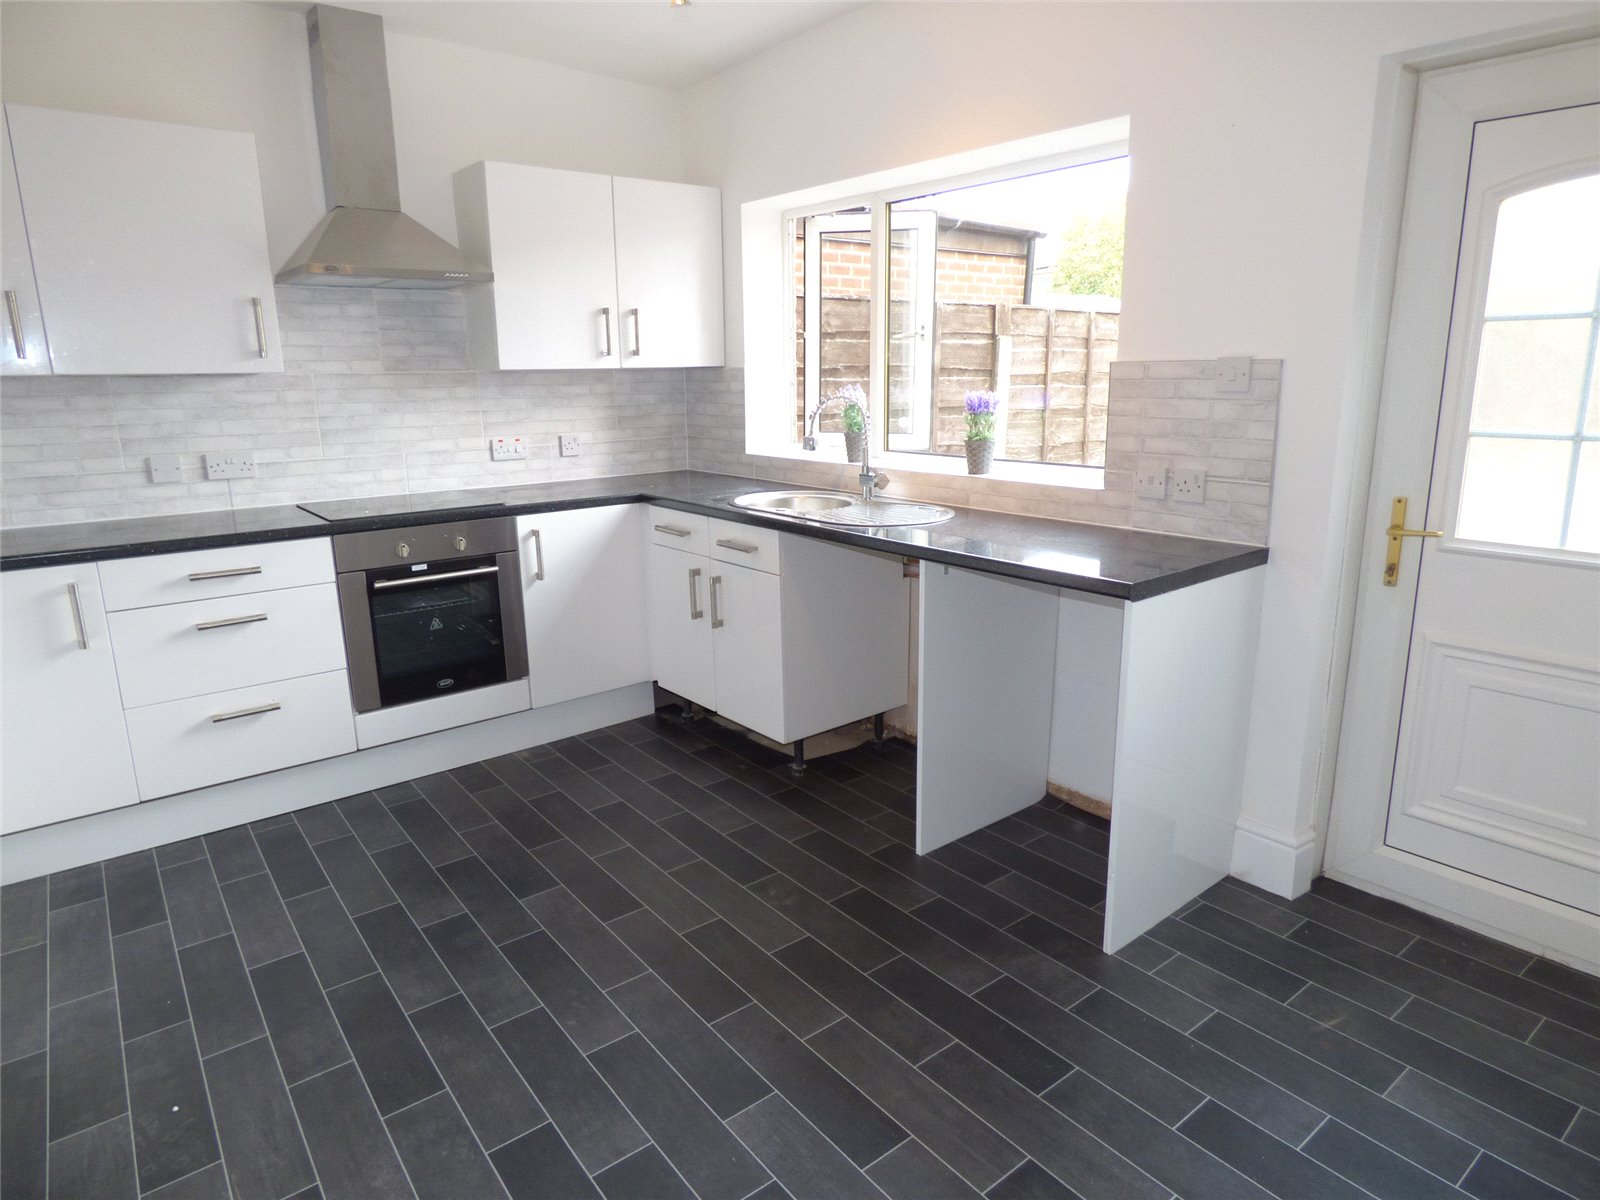 3 Bedrooms Terraced House for sale in Norfolk Avenue, Heywood, Greater Manchester, OL10